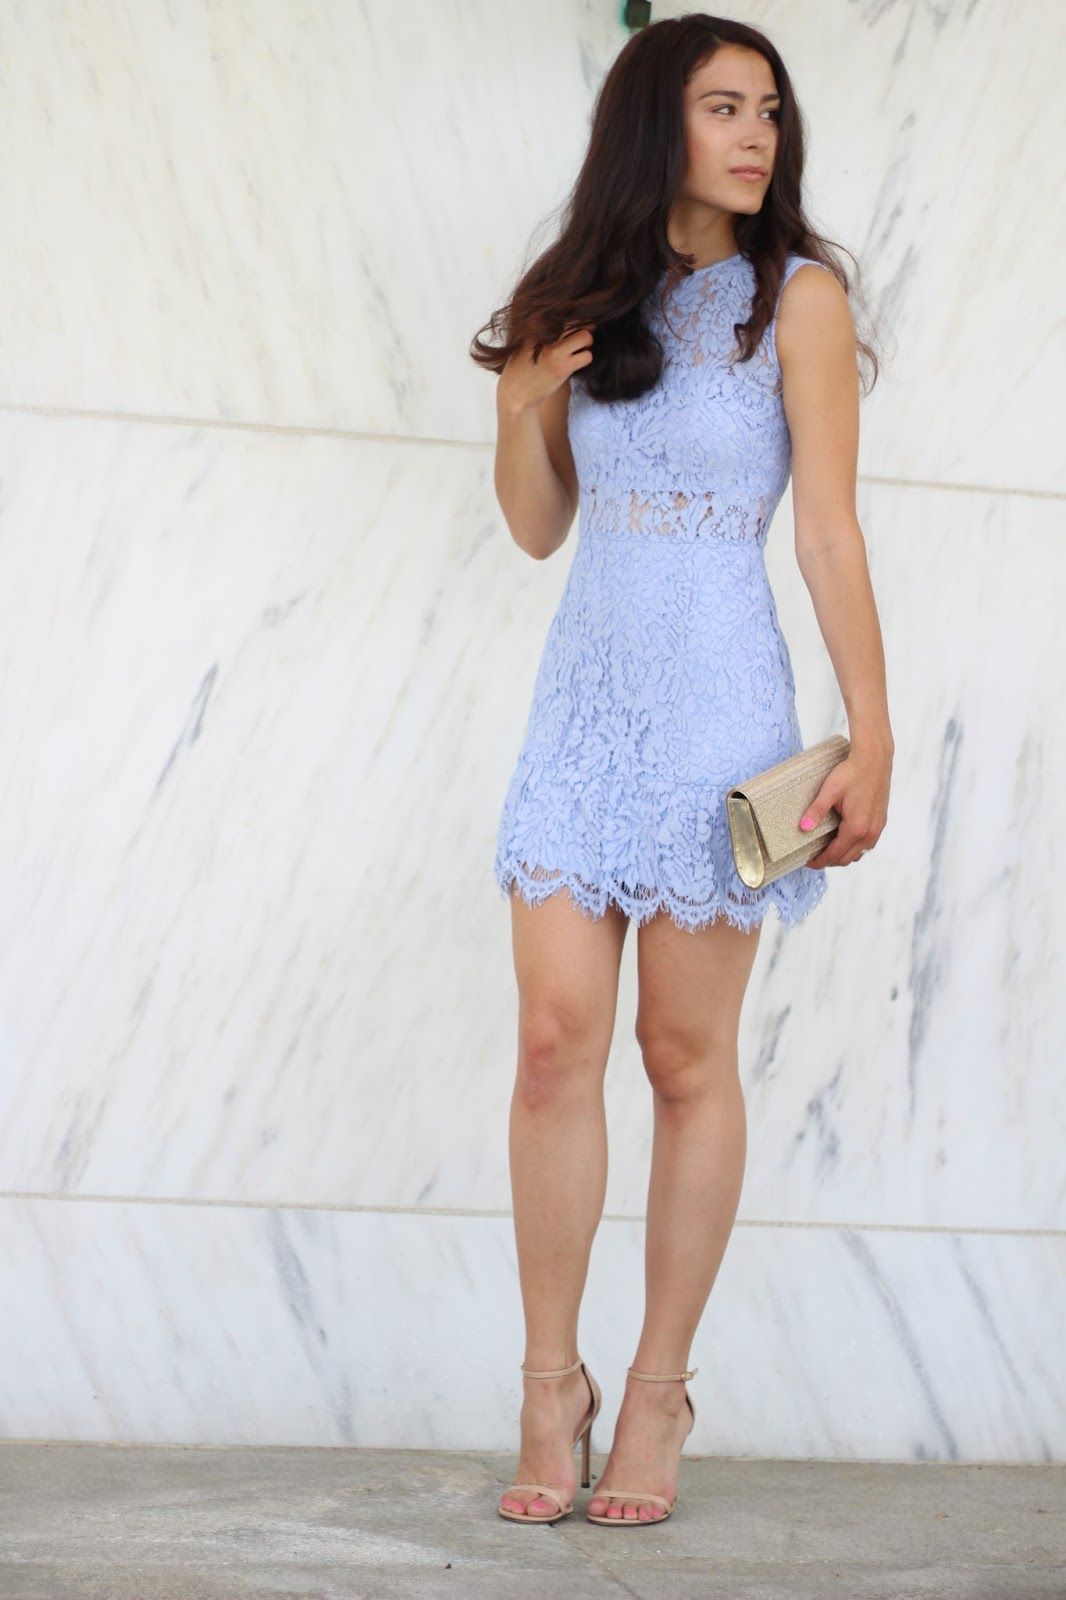 Blue lace dress for an afternoon wedding guest my style for Baby blue wedding guest dress